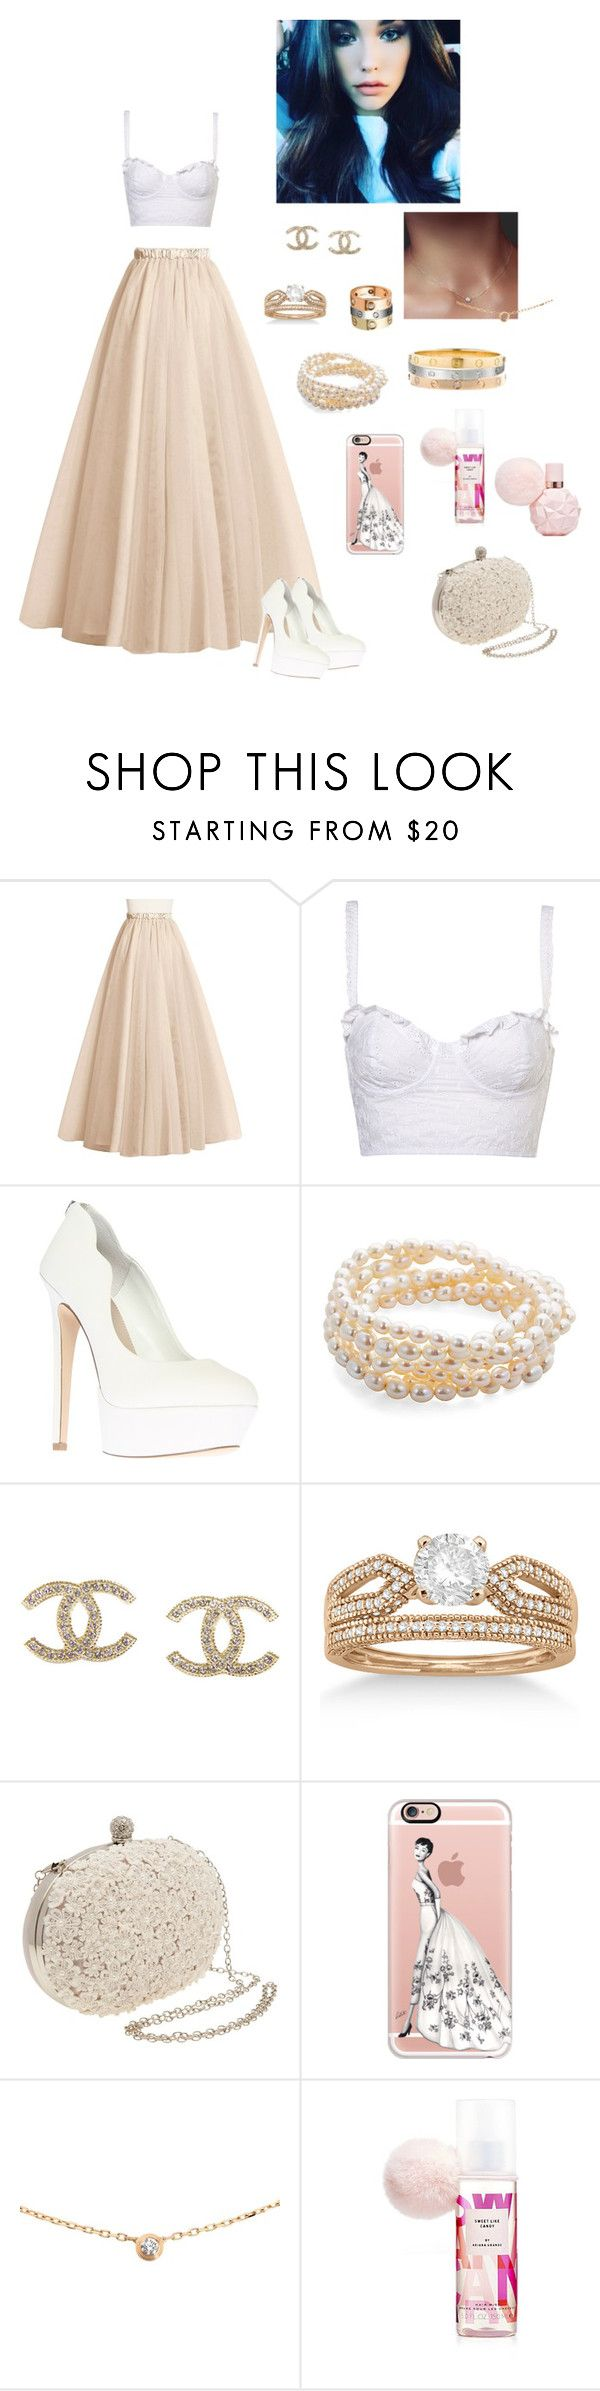 """""""Princess i am 💛💫"""" by mariaxl ❤ liked on Polyvore featuring Carvela, Catherine Canino Jewelry, Chanel, Allurez, A